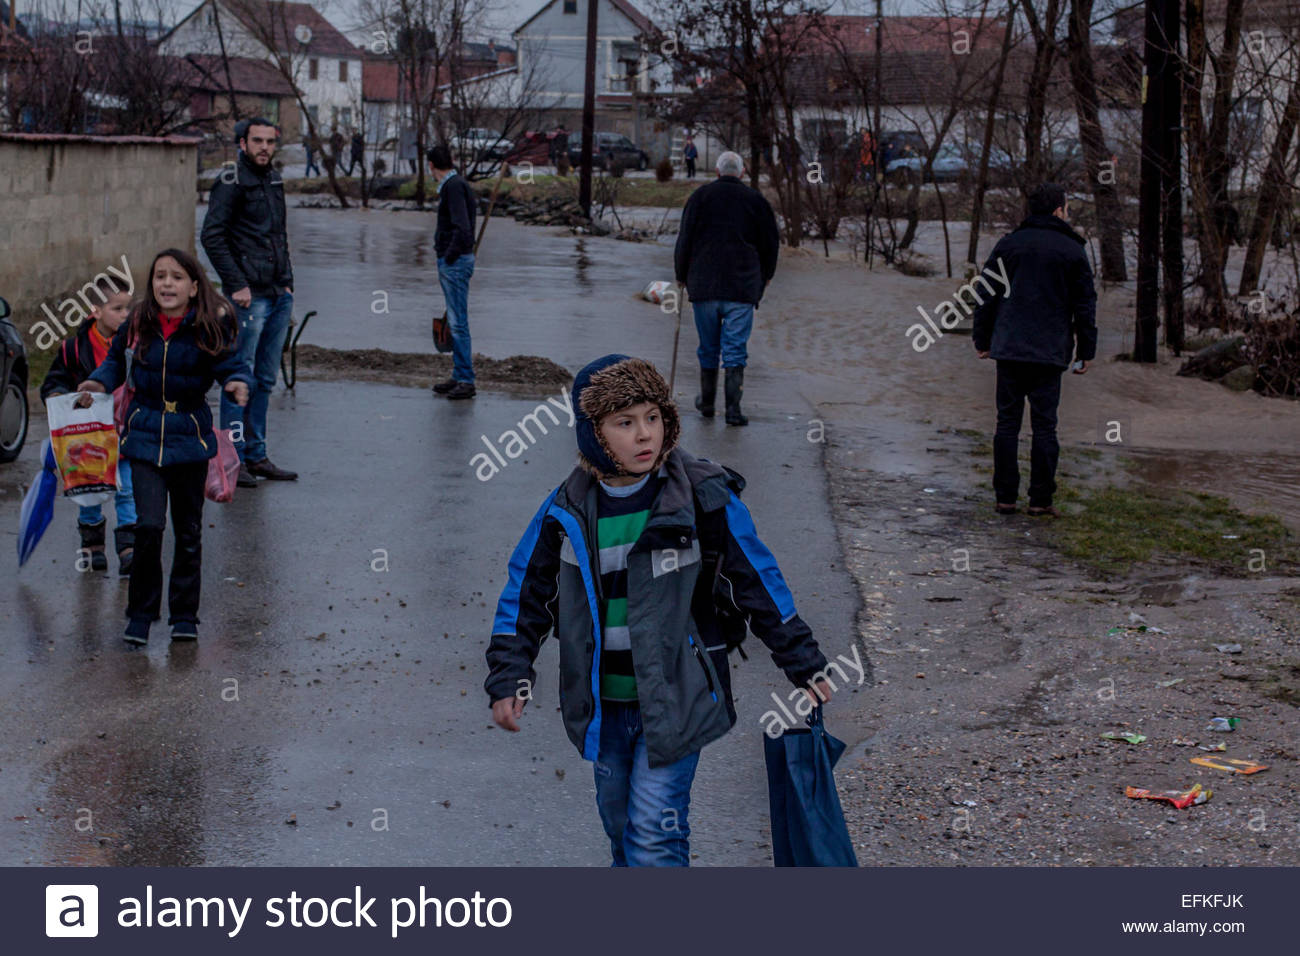 School Children Try To Find A Way Out Of Flood Zones A General View Shows  Flooded How To Find The Area